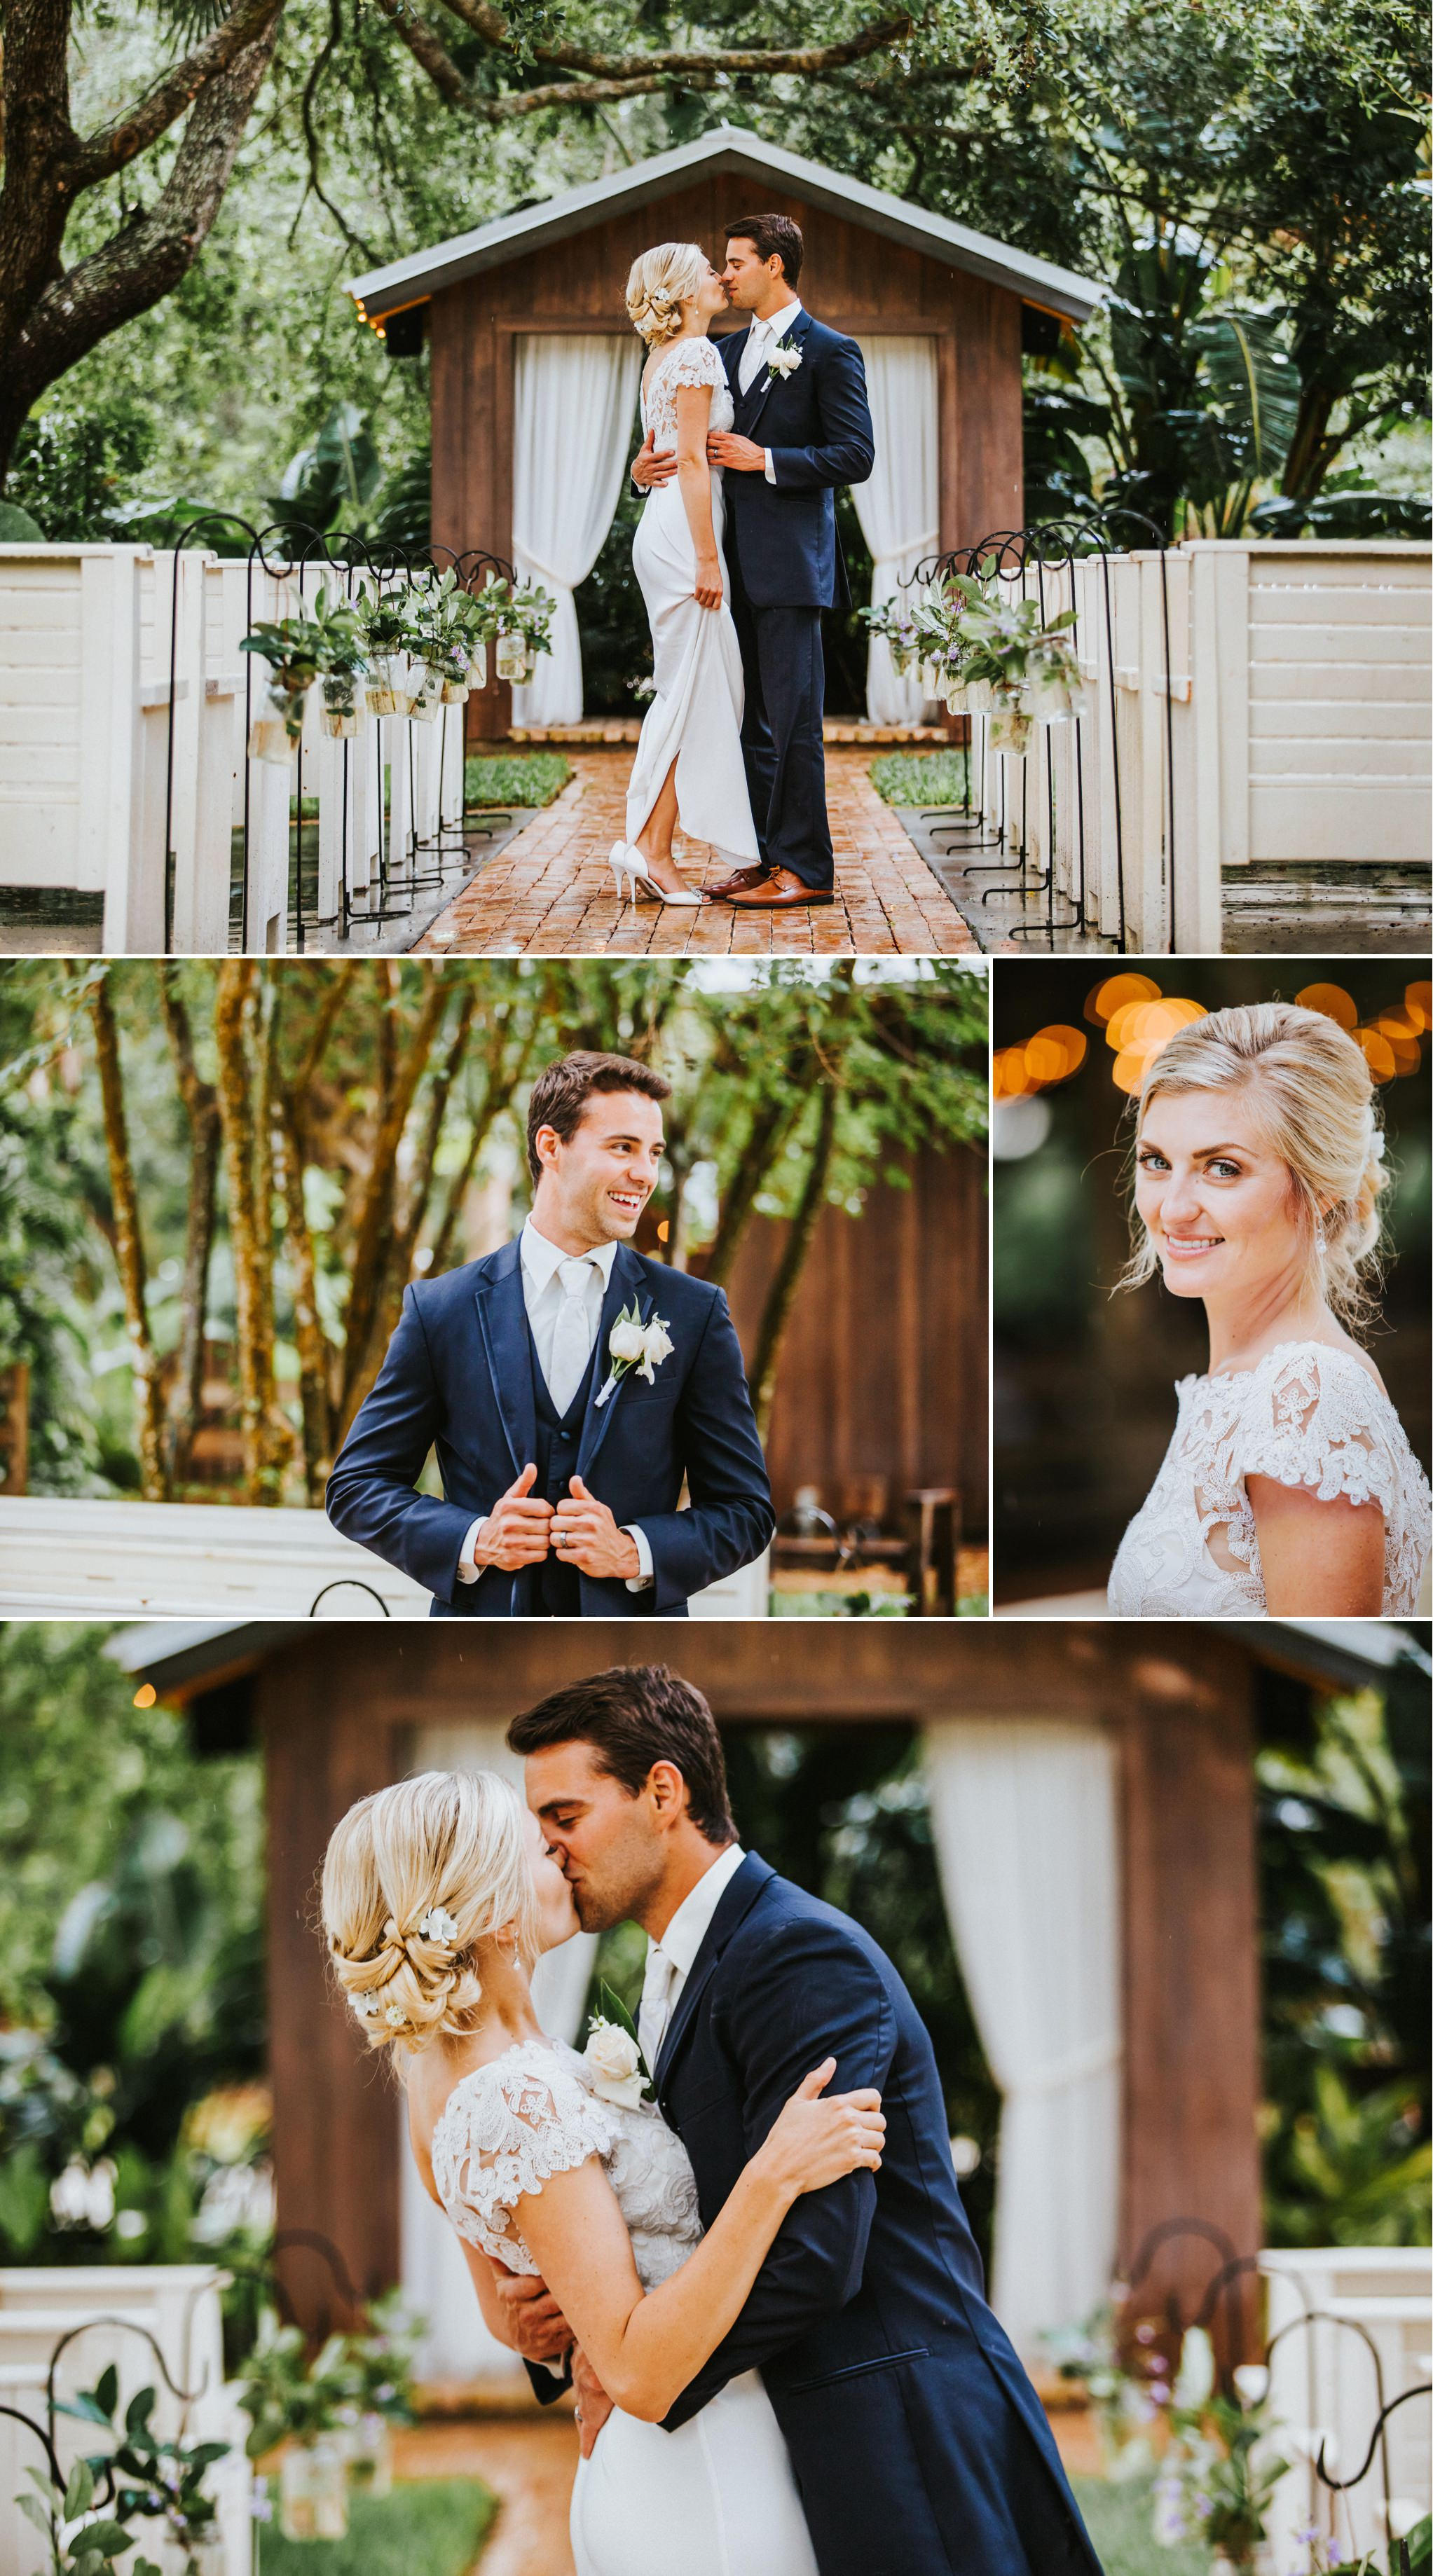 Boho Chic Orlando Wedding Photography Delameter House - Angela + Max 33.jpg